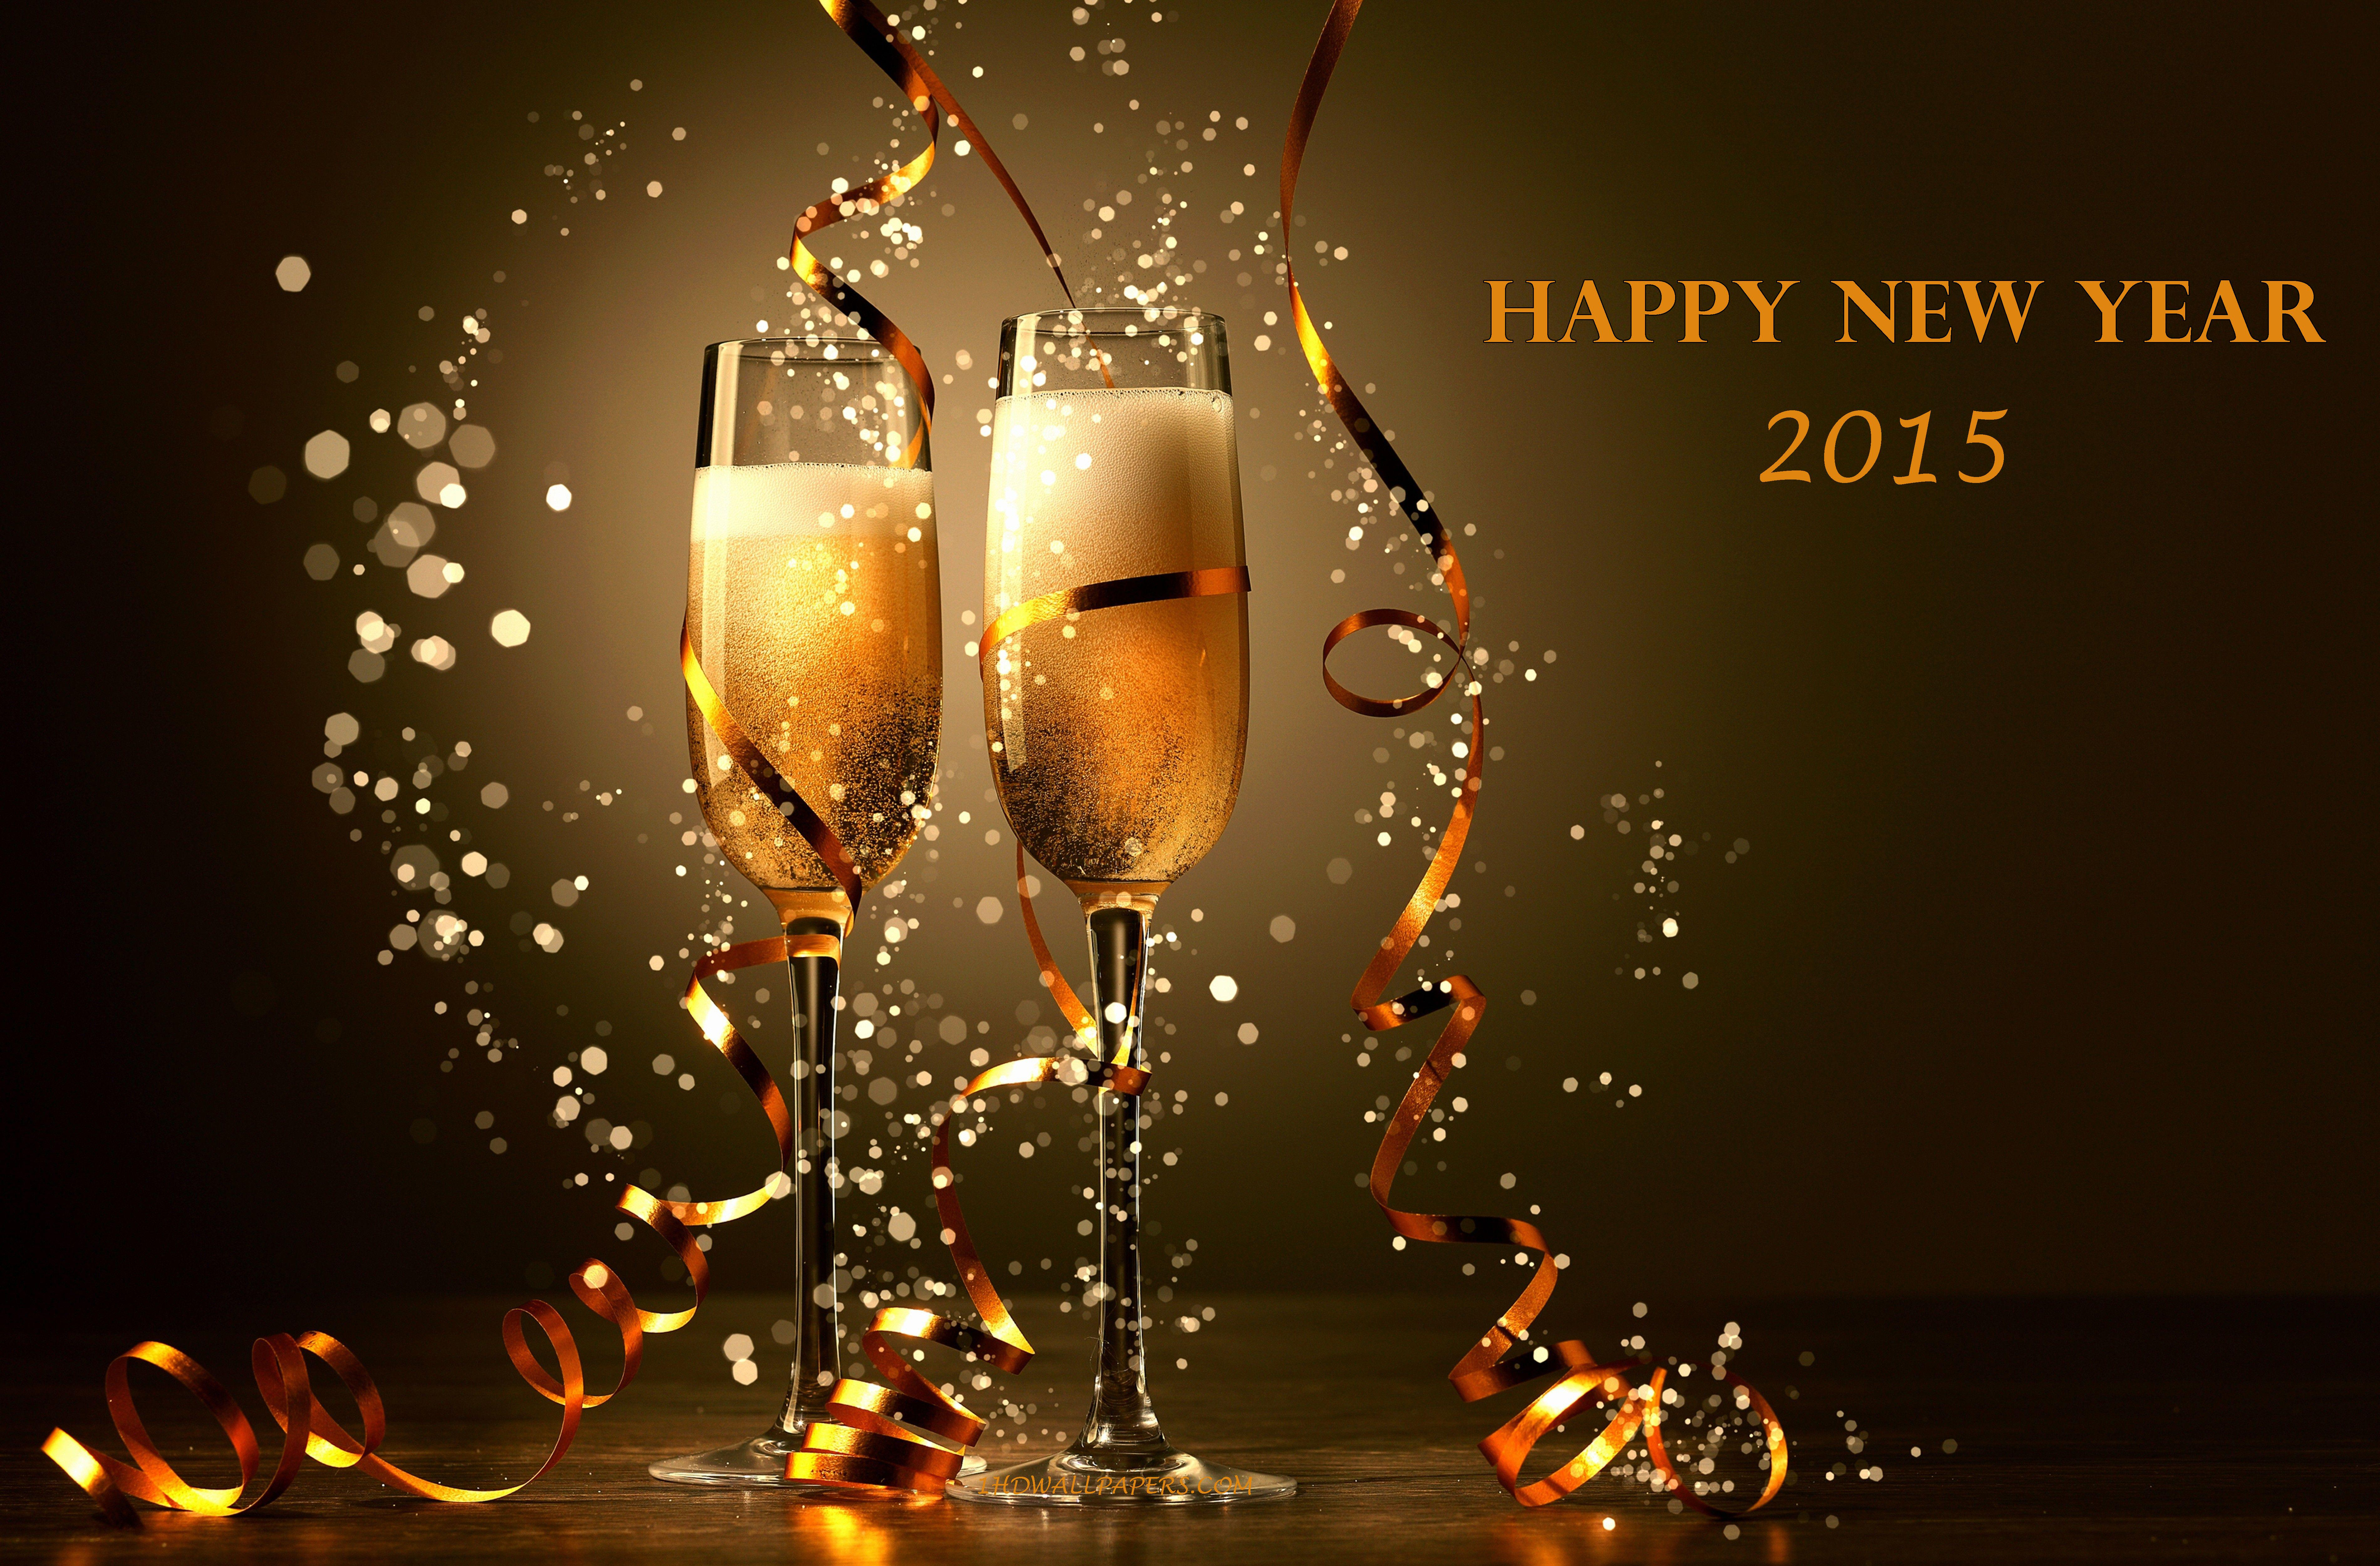 Latest New Year 2015 Wallpapers   Webjazba Science Technology 7600x5000